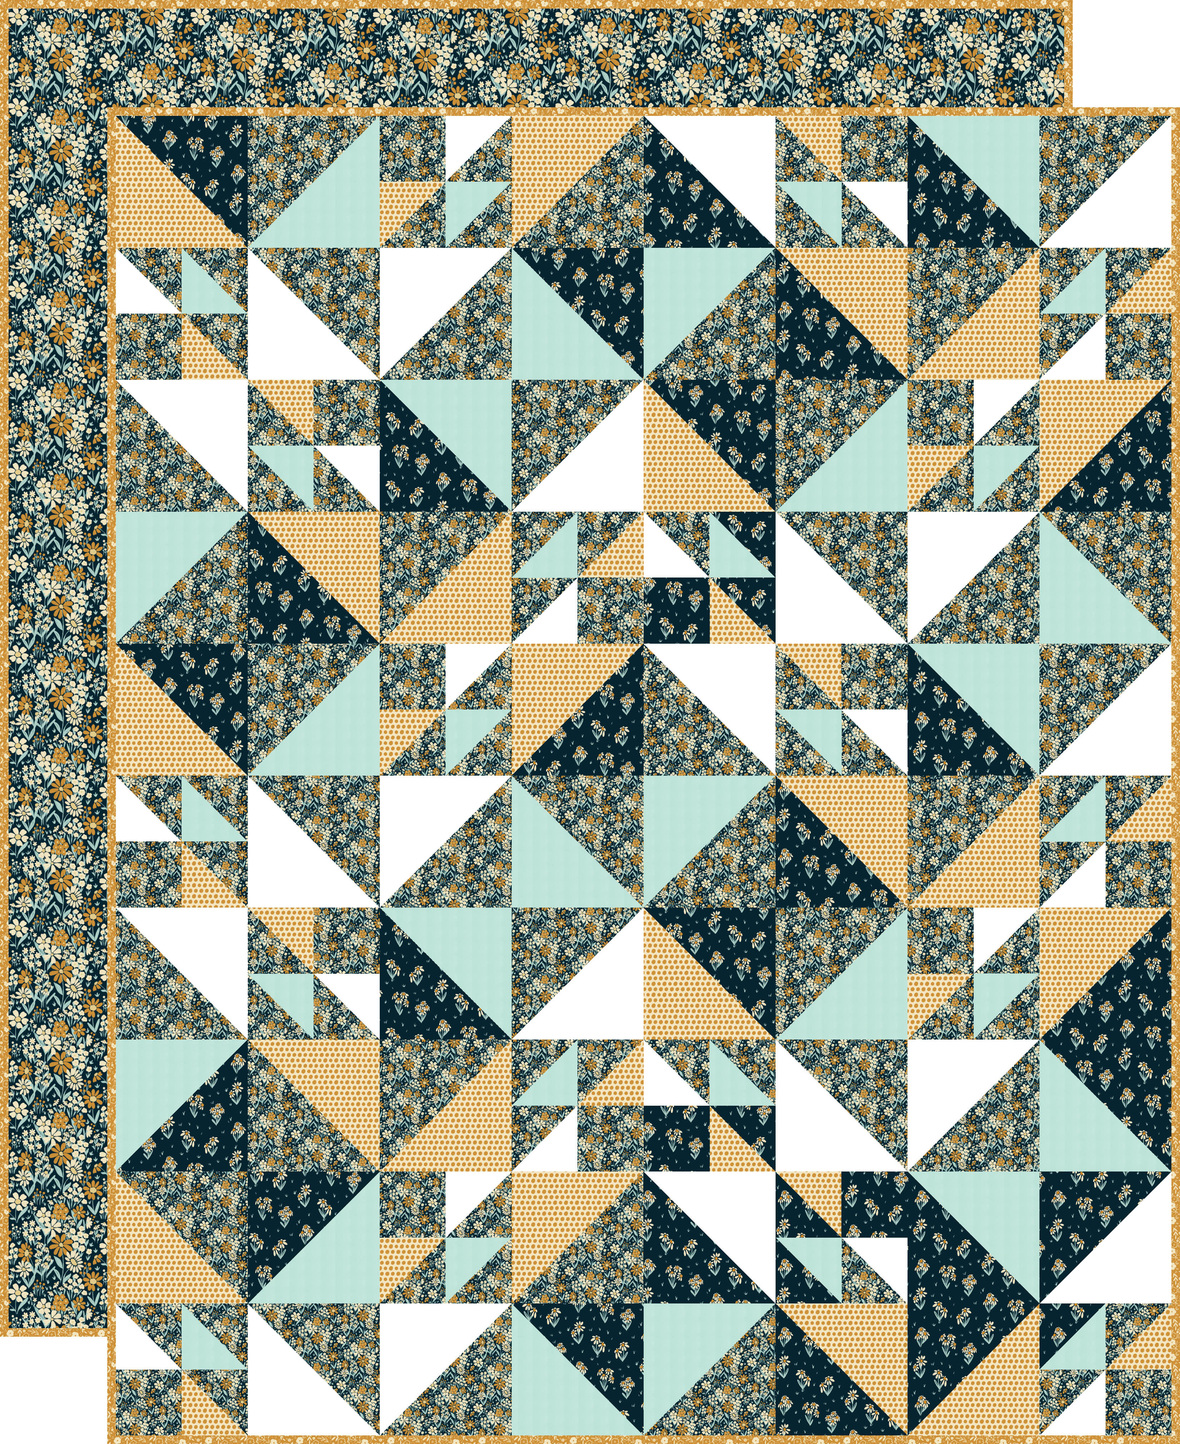 Birds Hill Quilt with backing